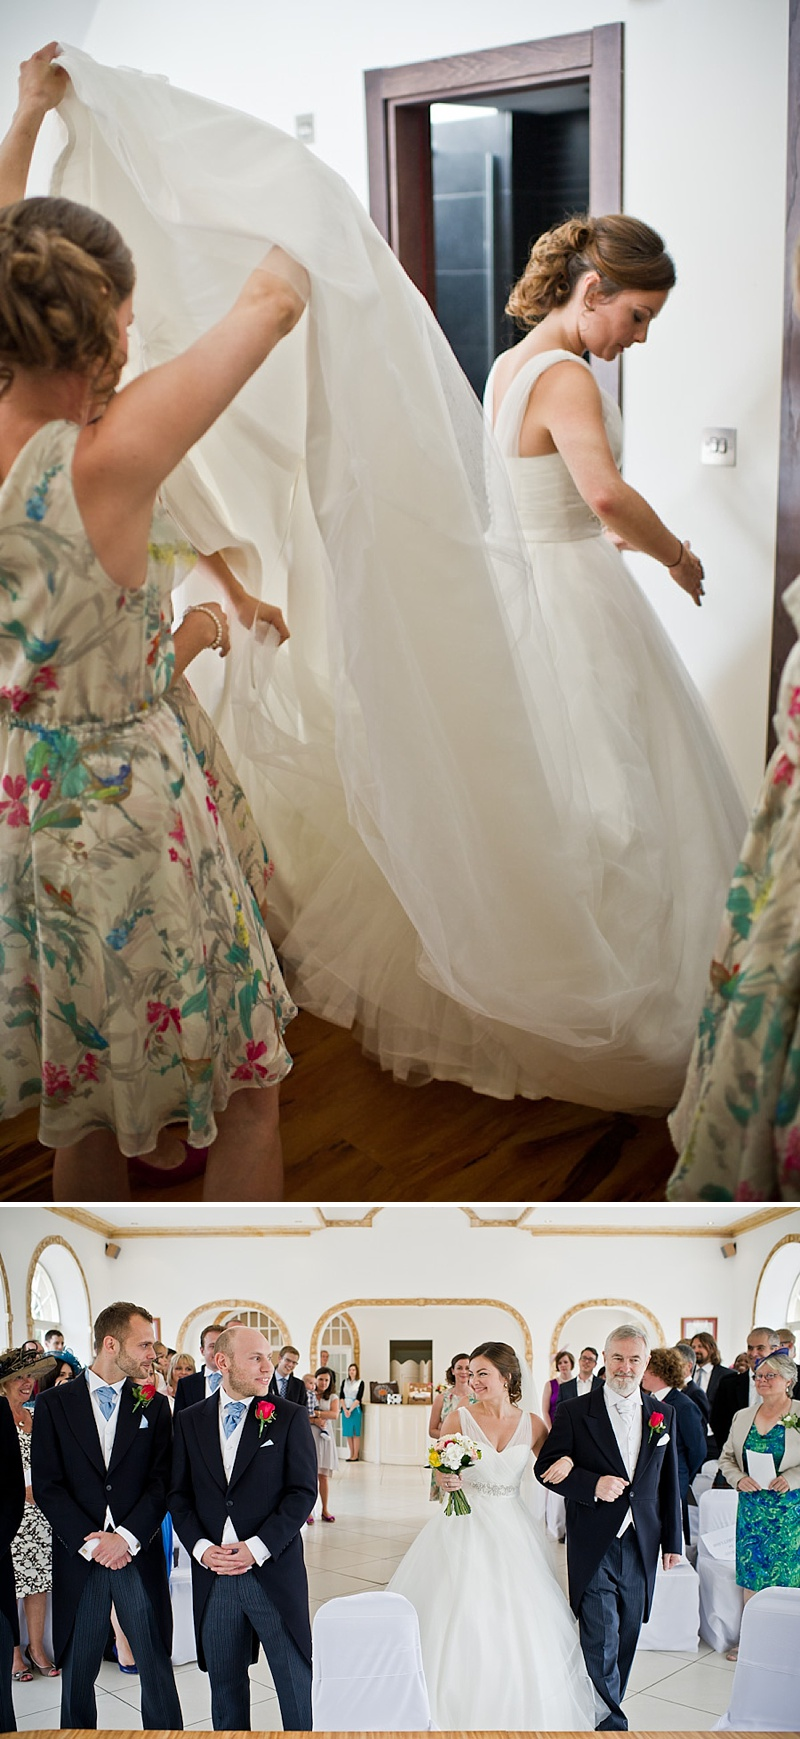 An Elegant Contemporary Wedding At Northbrook Park Farnham With Bride In Ellis Bridal Gown And